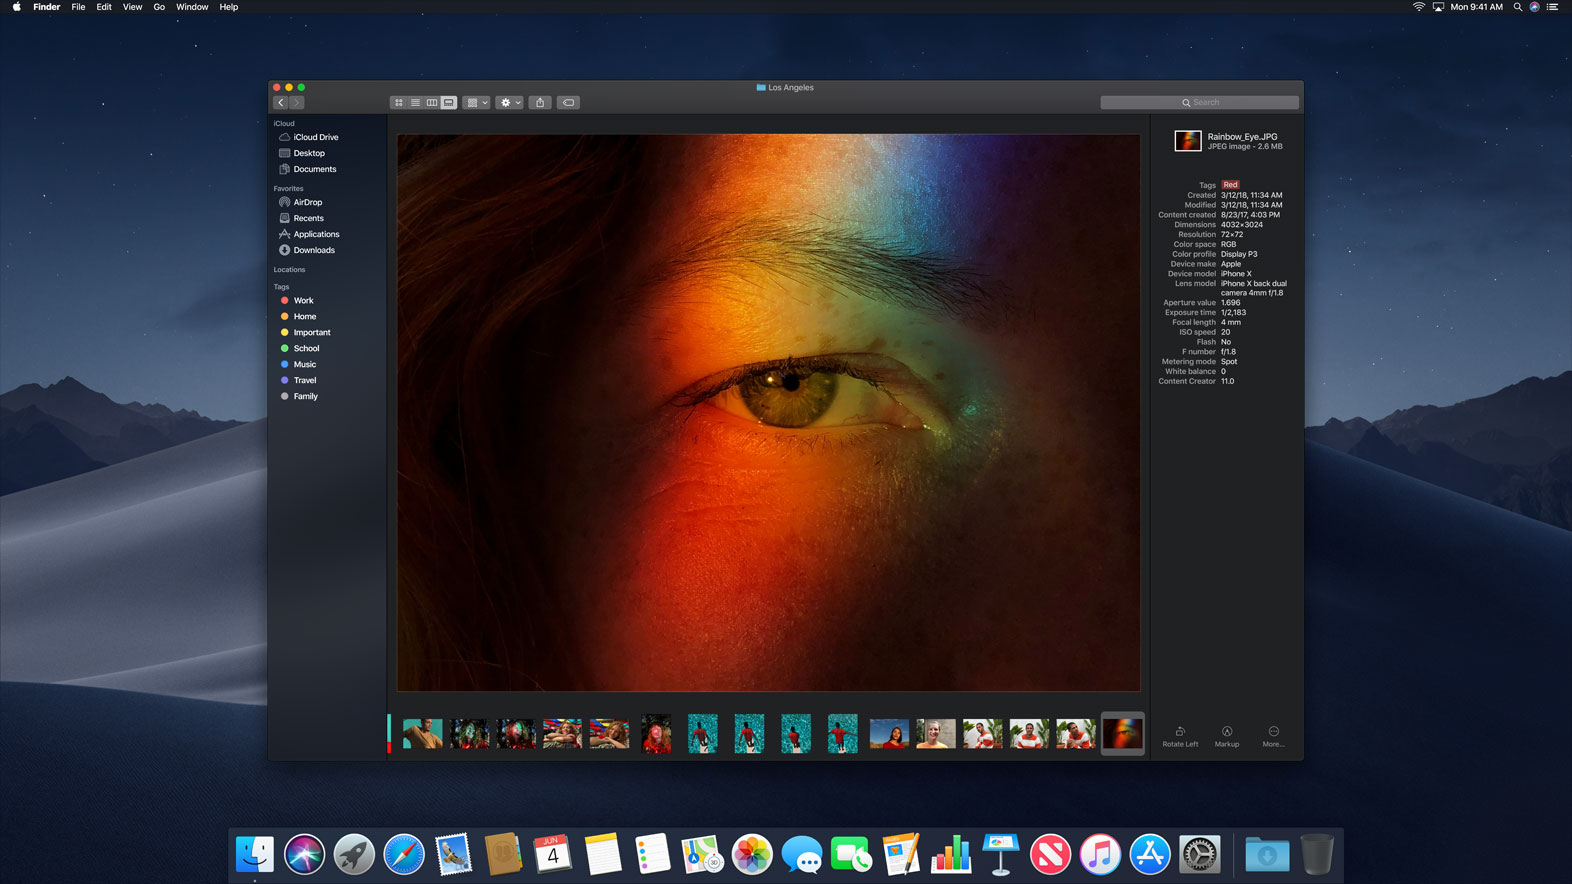 How to view image metadata on your Mac in the Finder, no